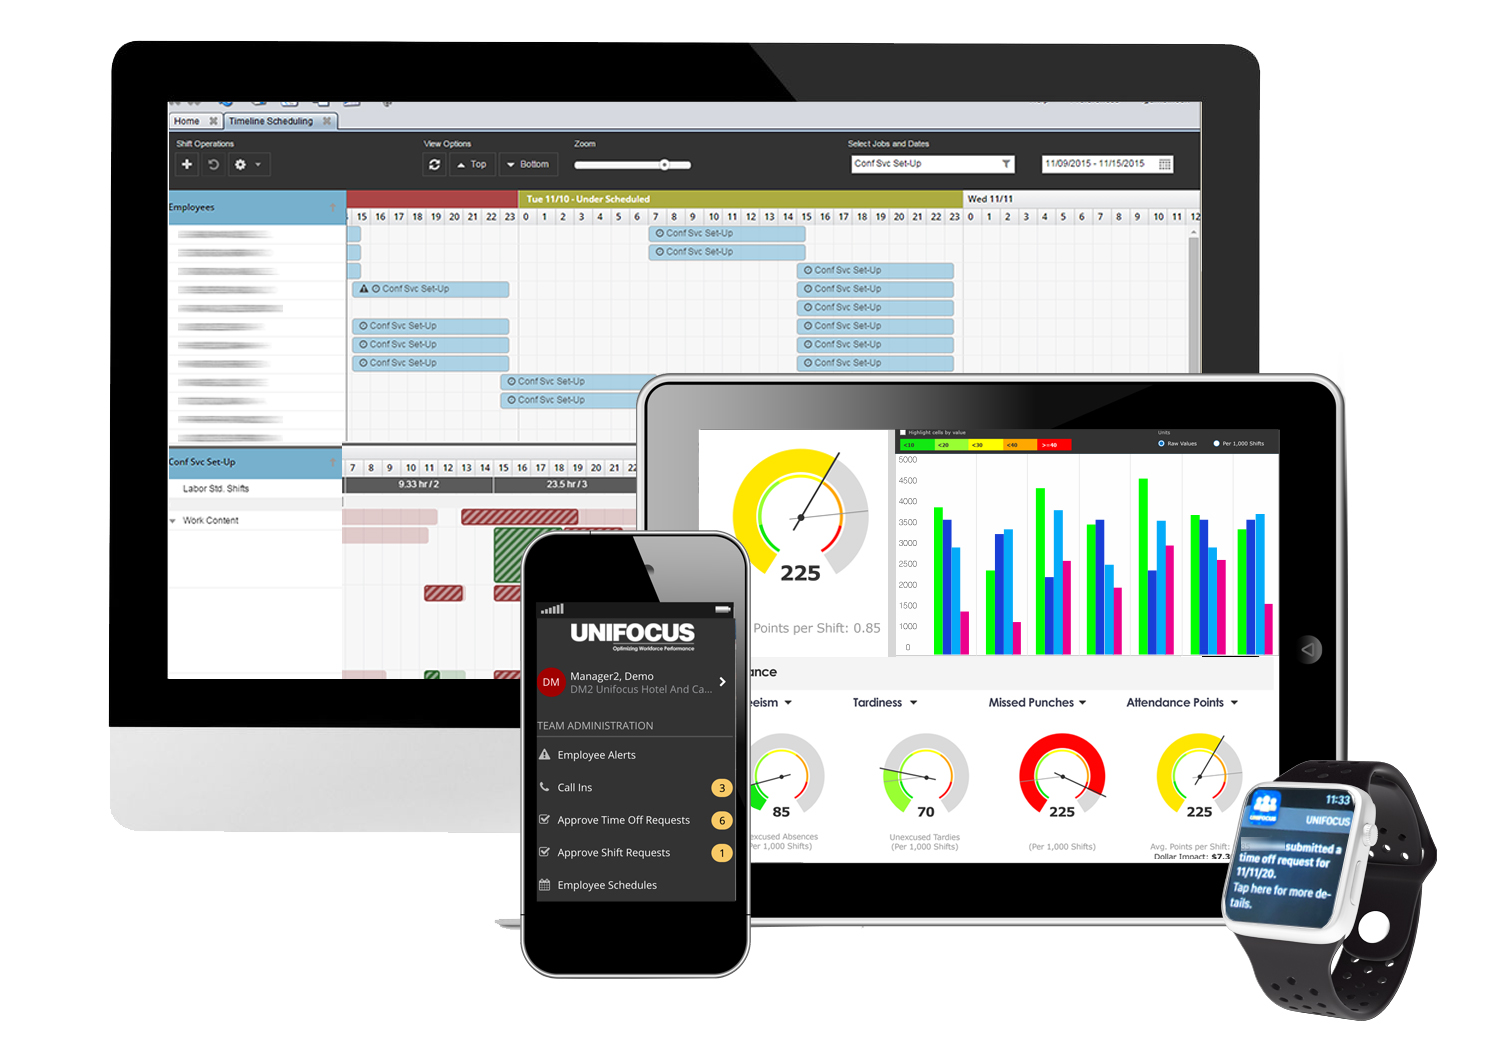 UniFocs tools let you work from any device so you can take your work mobile and make real-time decisions anywhere.